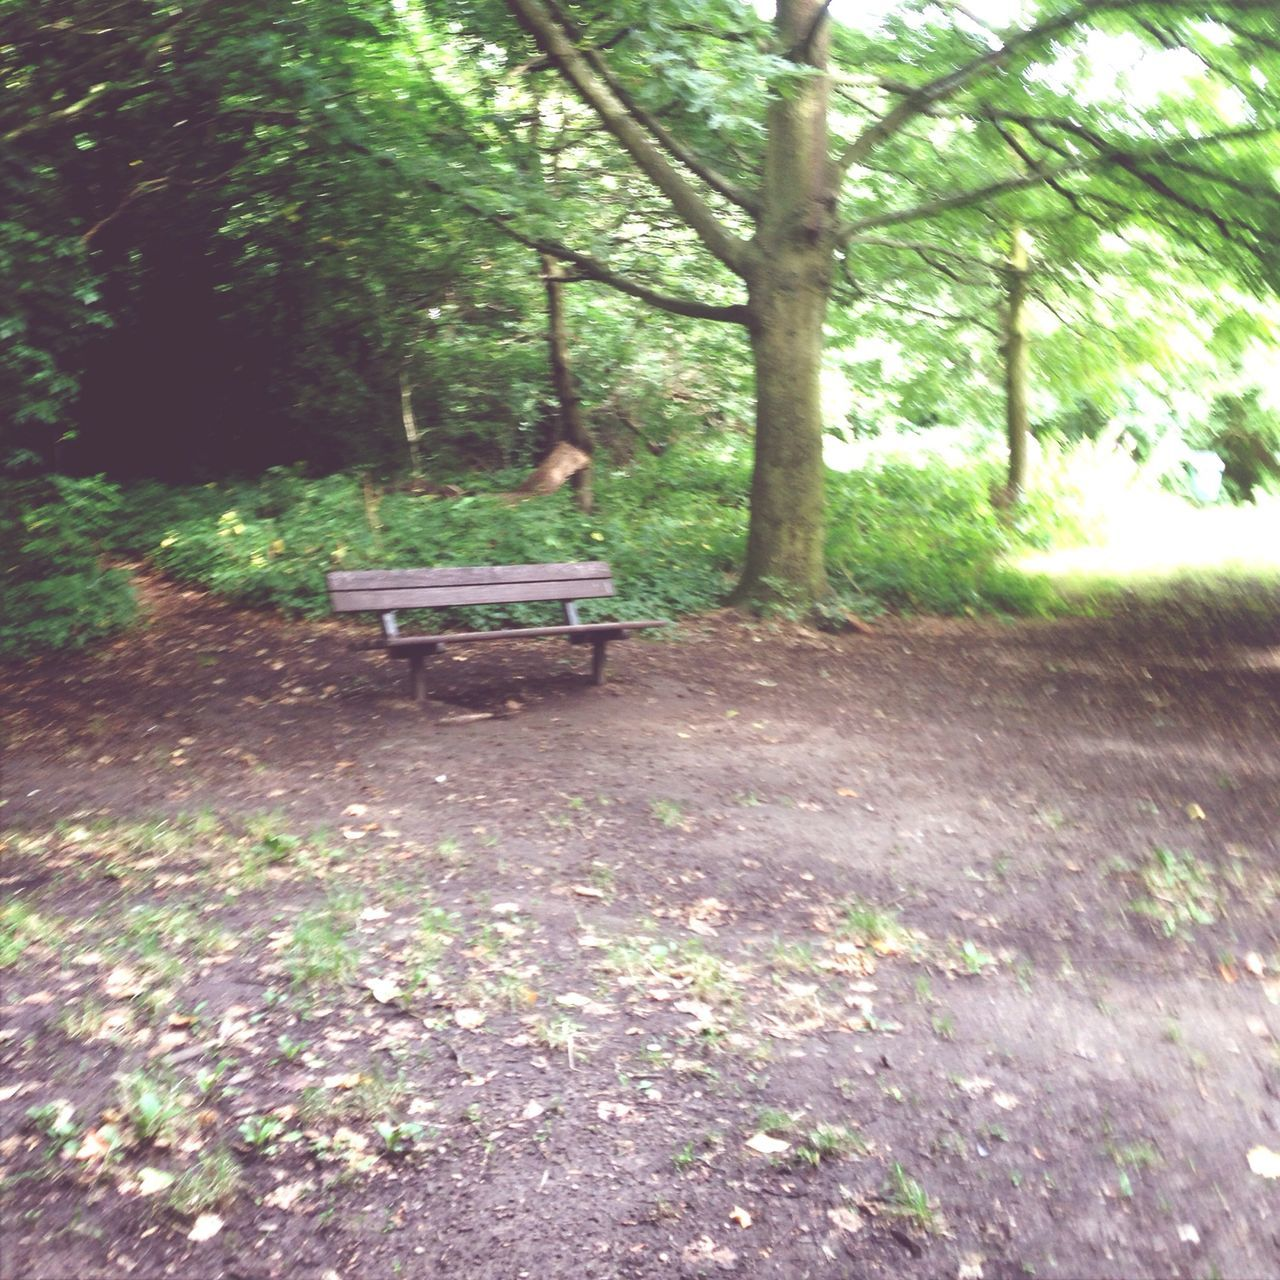 tree, nature, growth, no people, tranquility, day, beauty in nature, park - man made space, landscape, outdoors